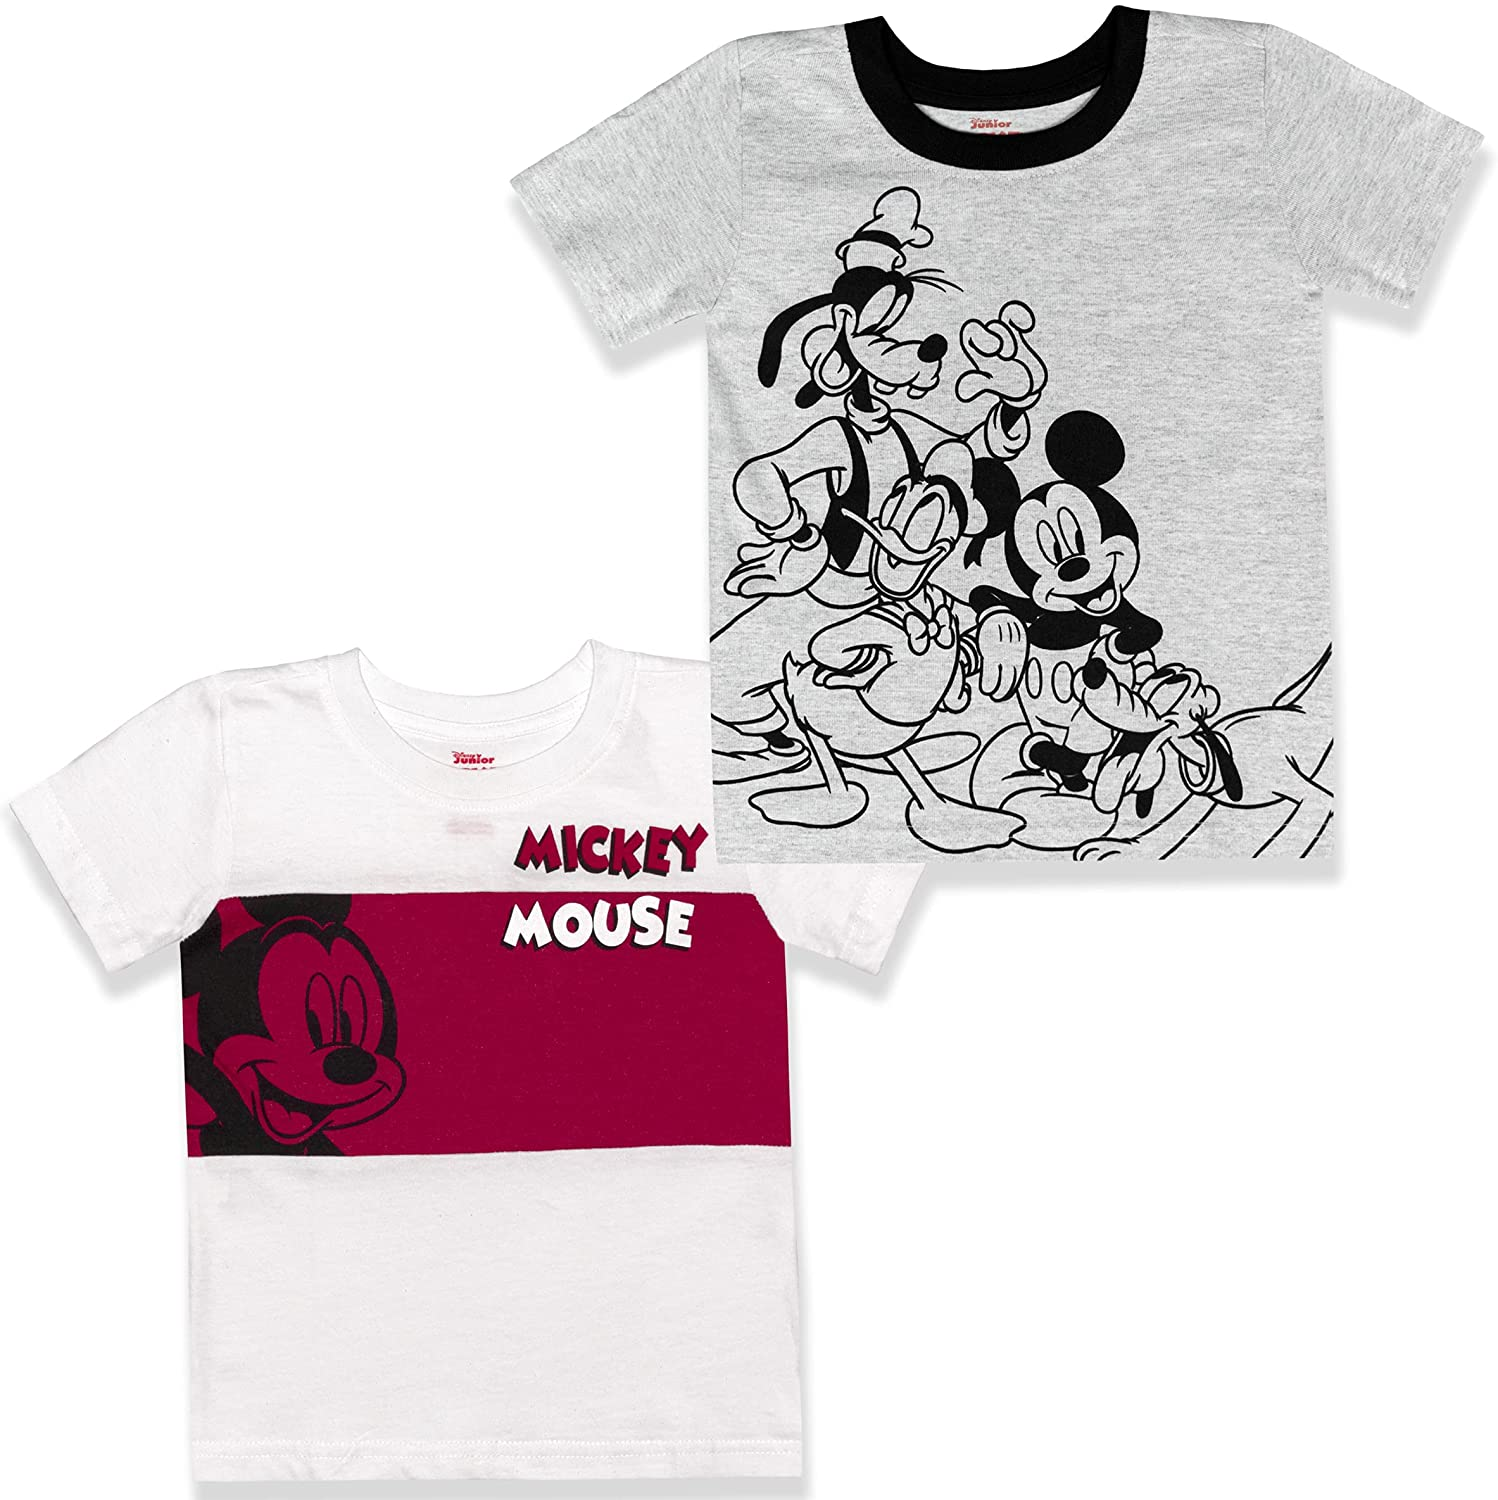 Disney Boy's 2-Pack Max 67% OFF Mickey Mouse Graphic 100% Tee Cot Set Shirt New item